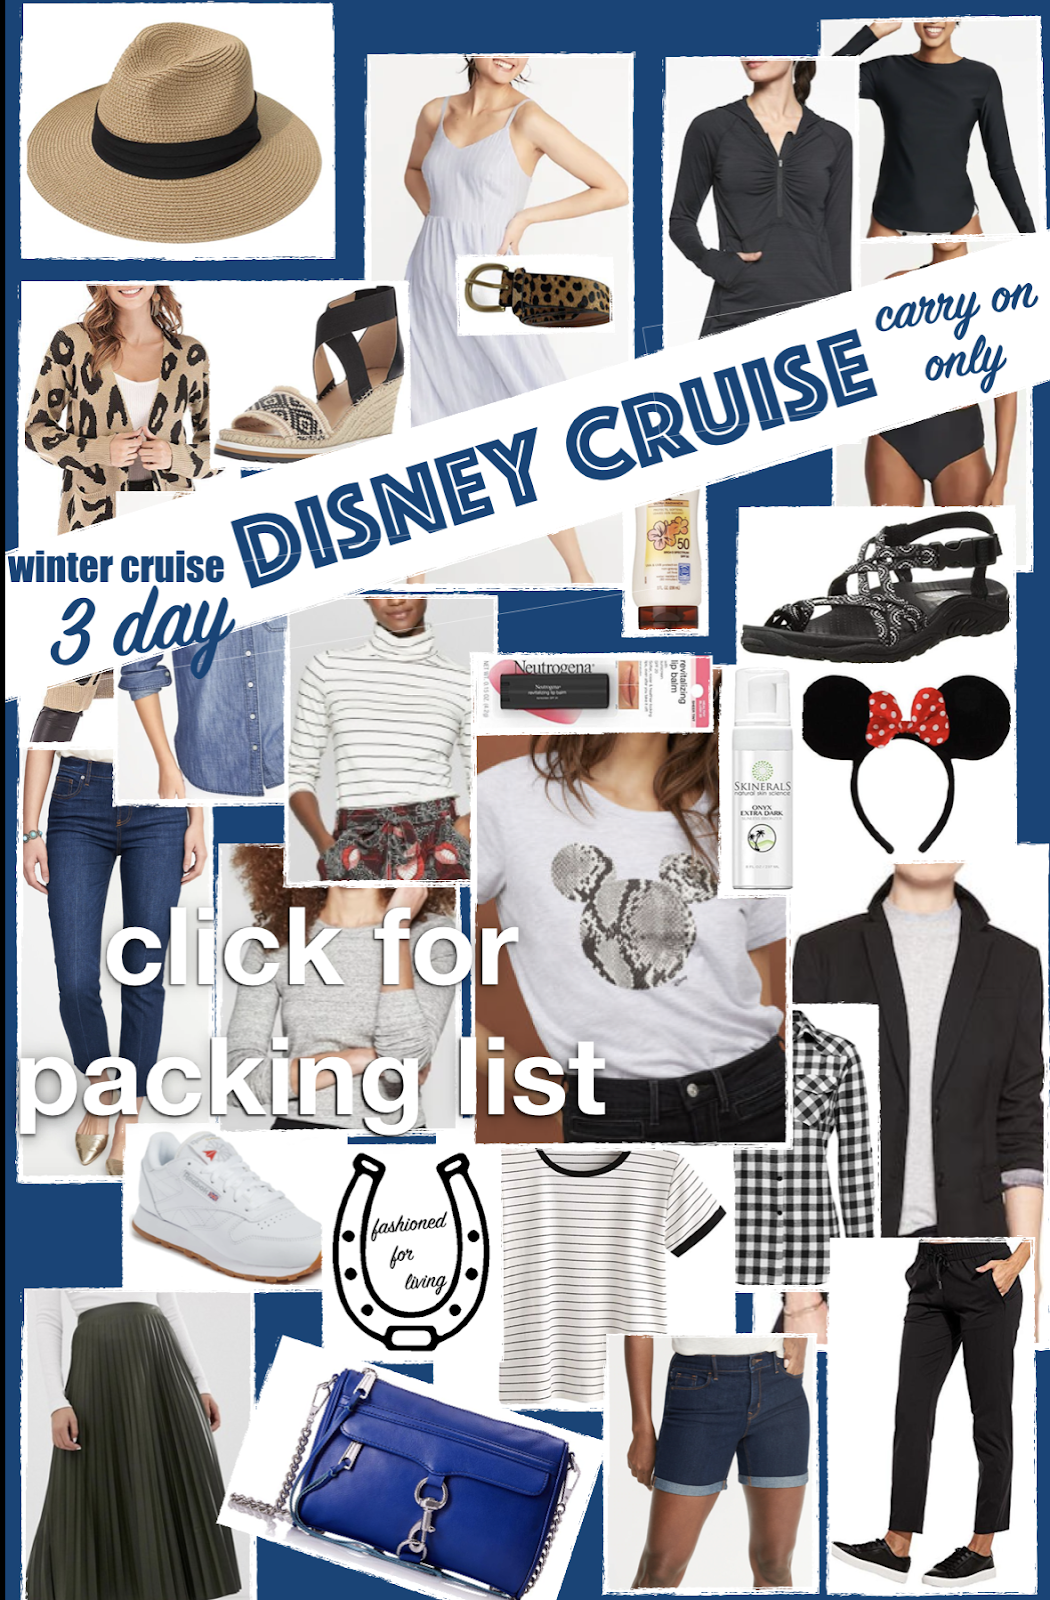 3 day disney cruise packing list - carry on luggage only